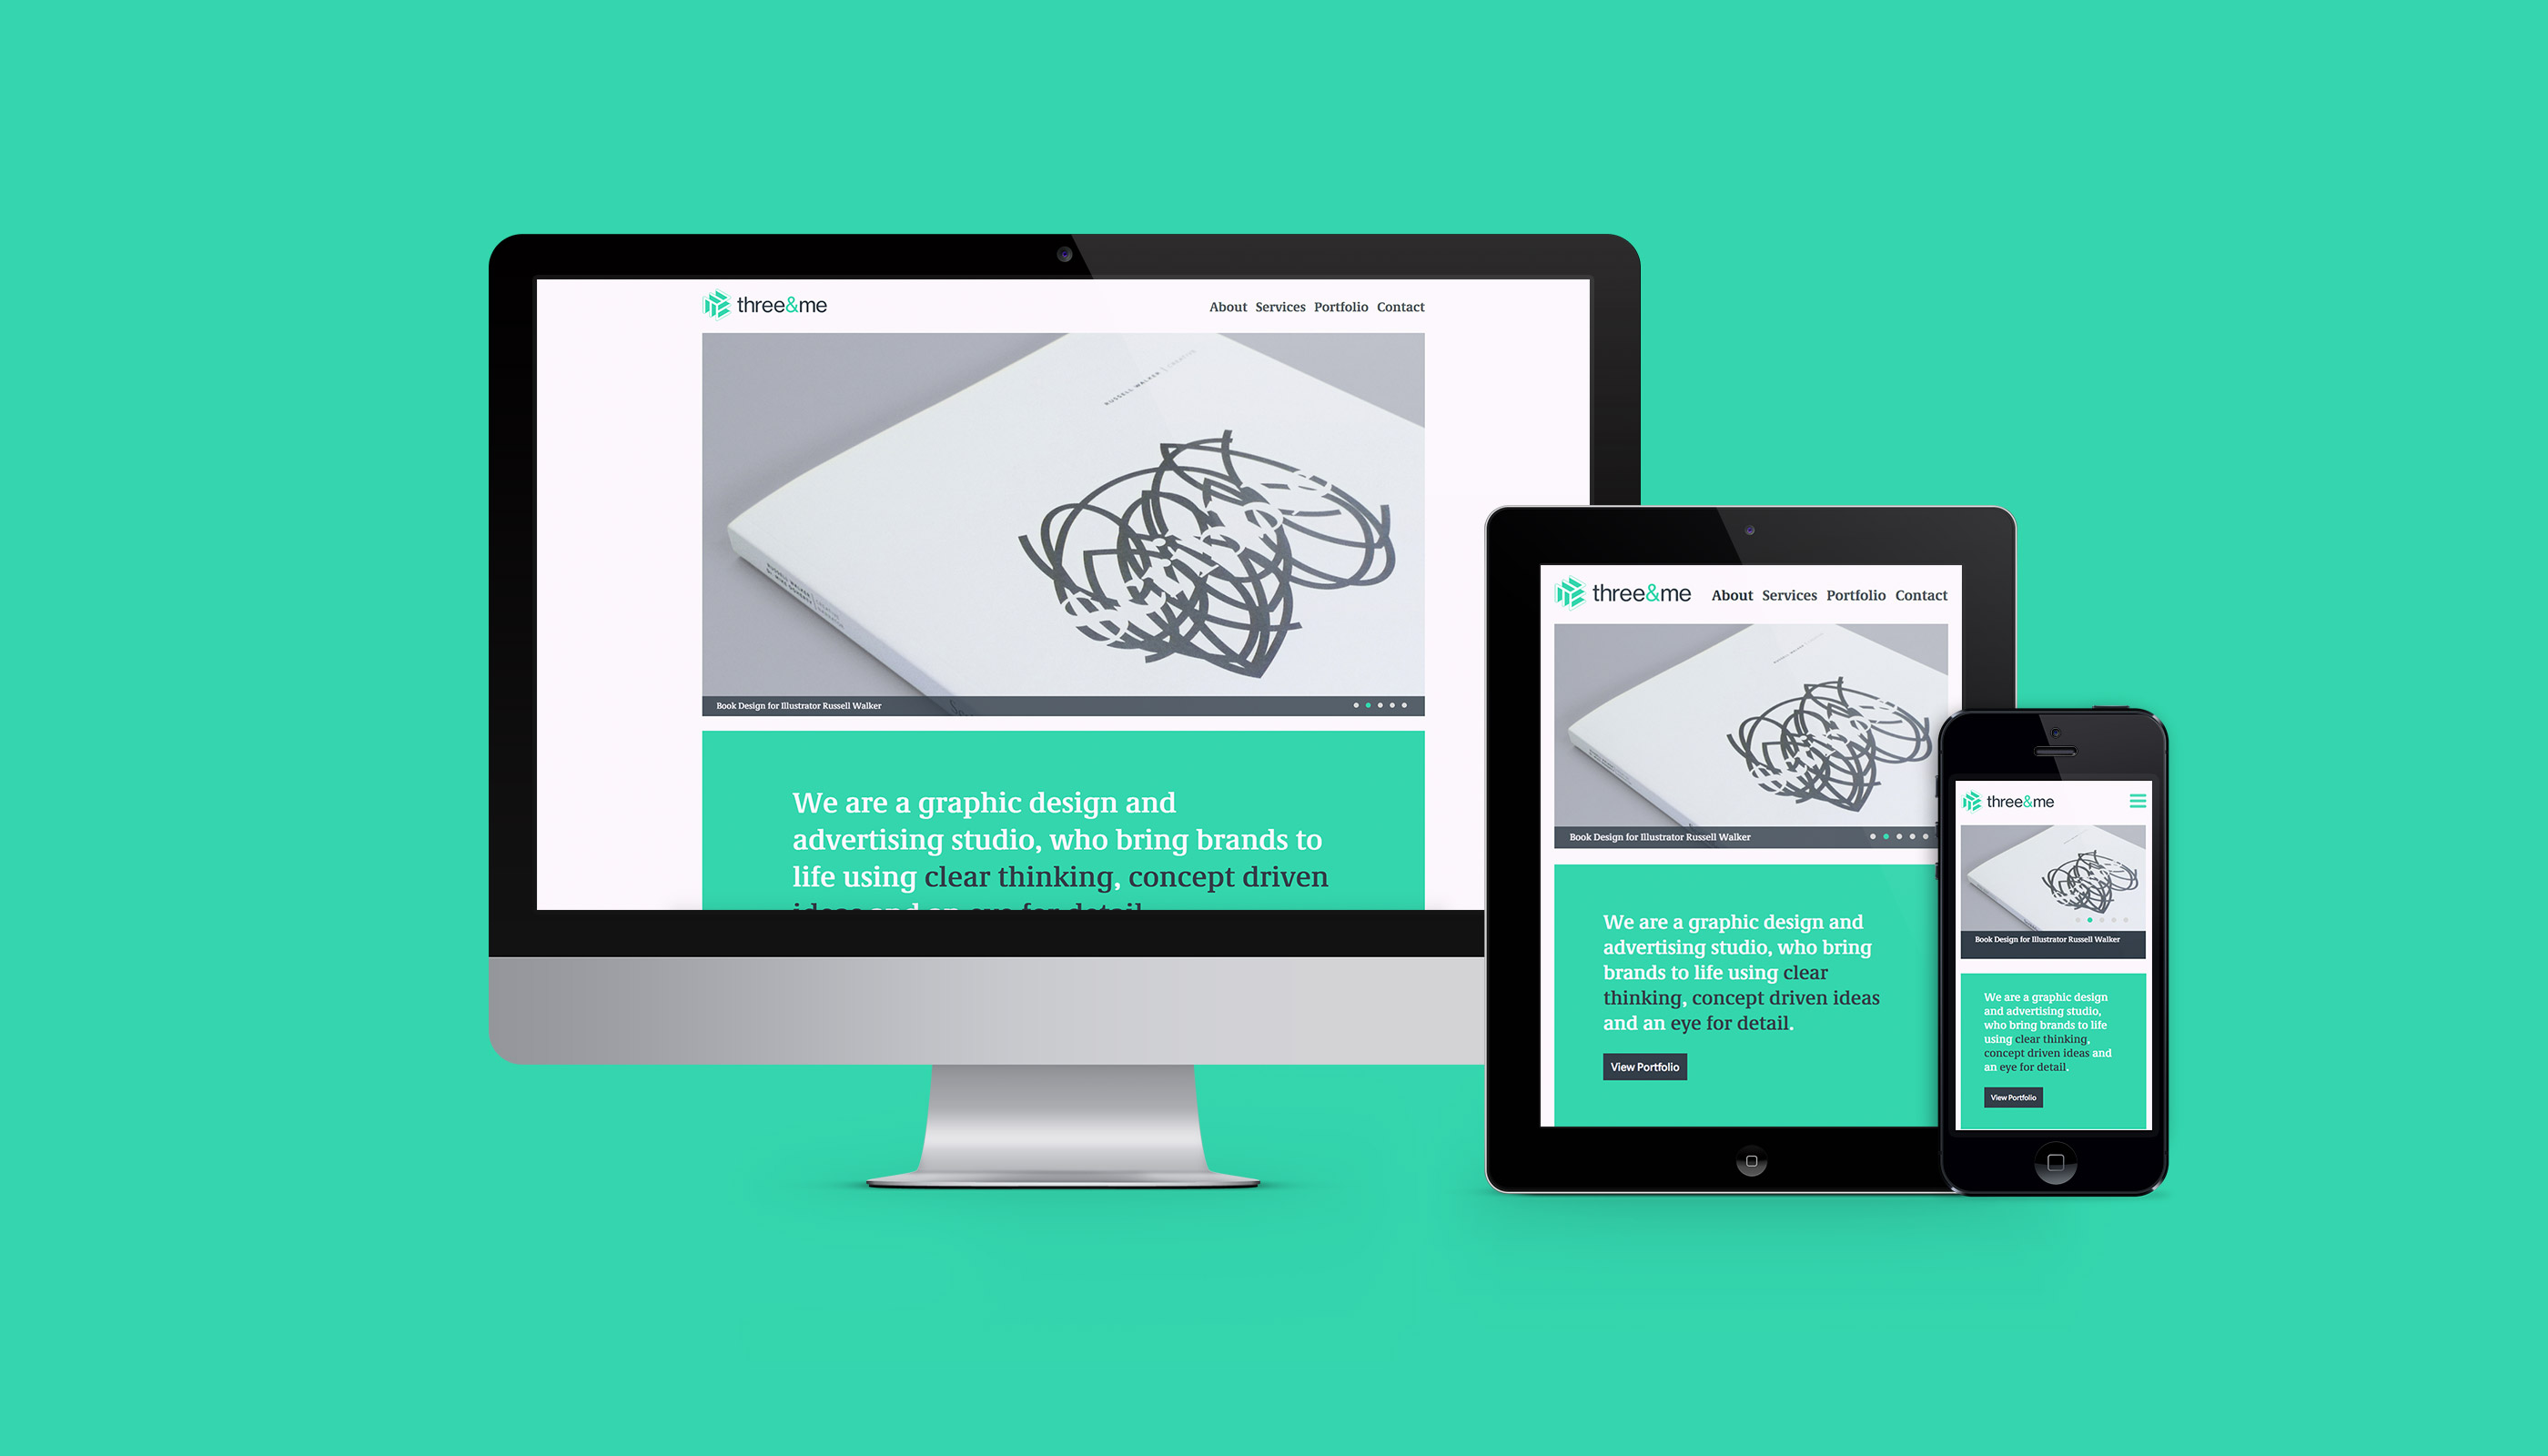 Responsive website design for Three&me graphic design agency in Ipswich, Suffolk.